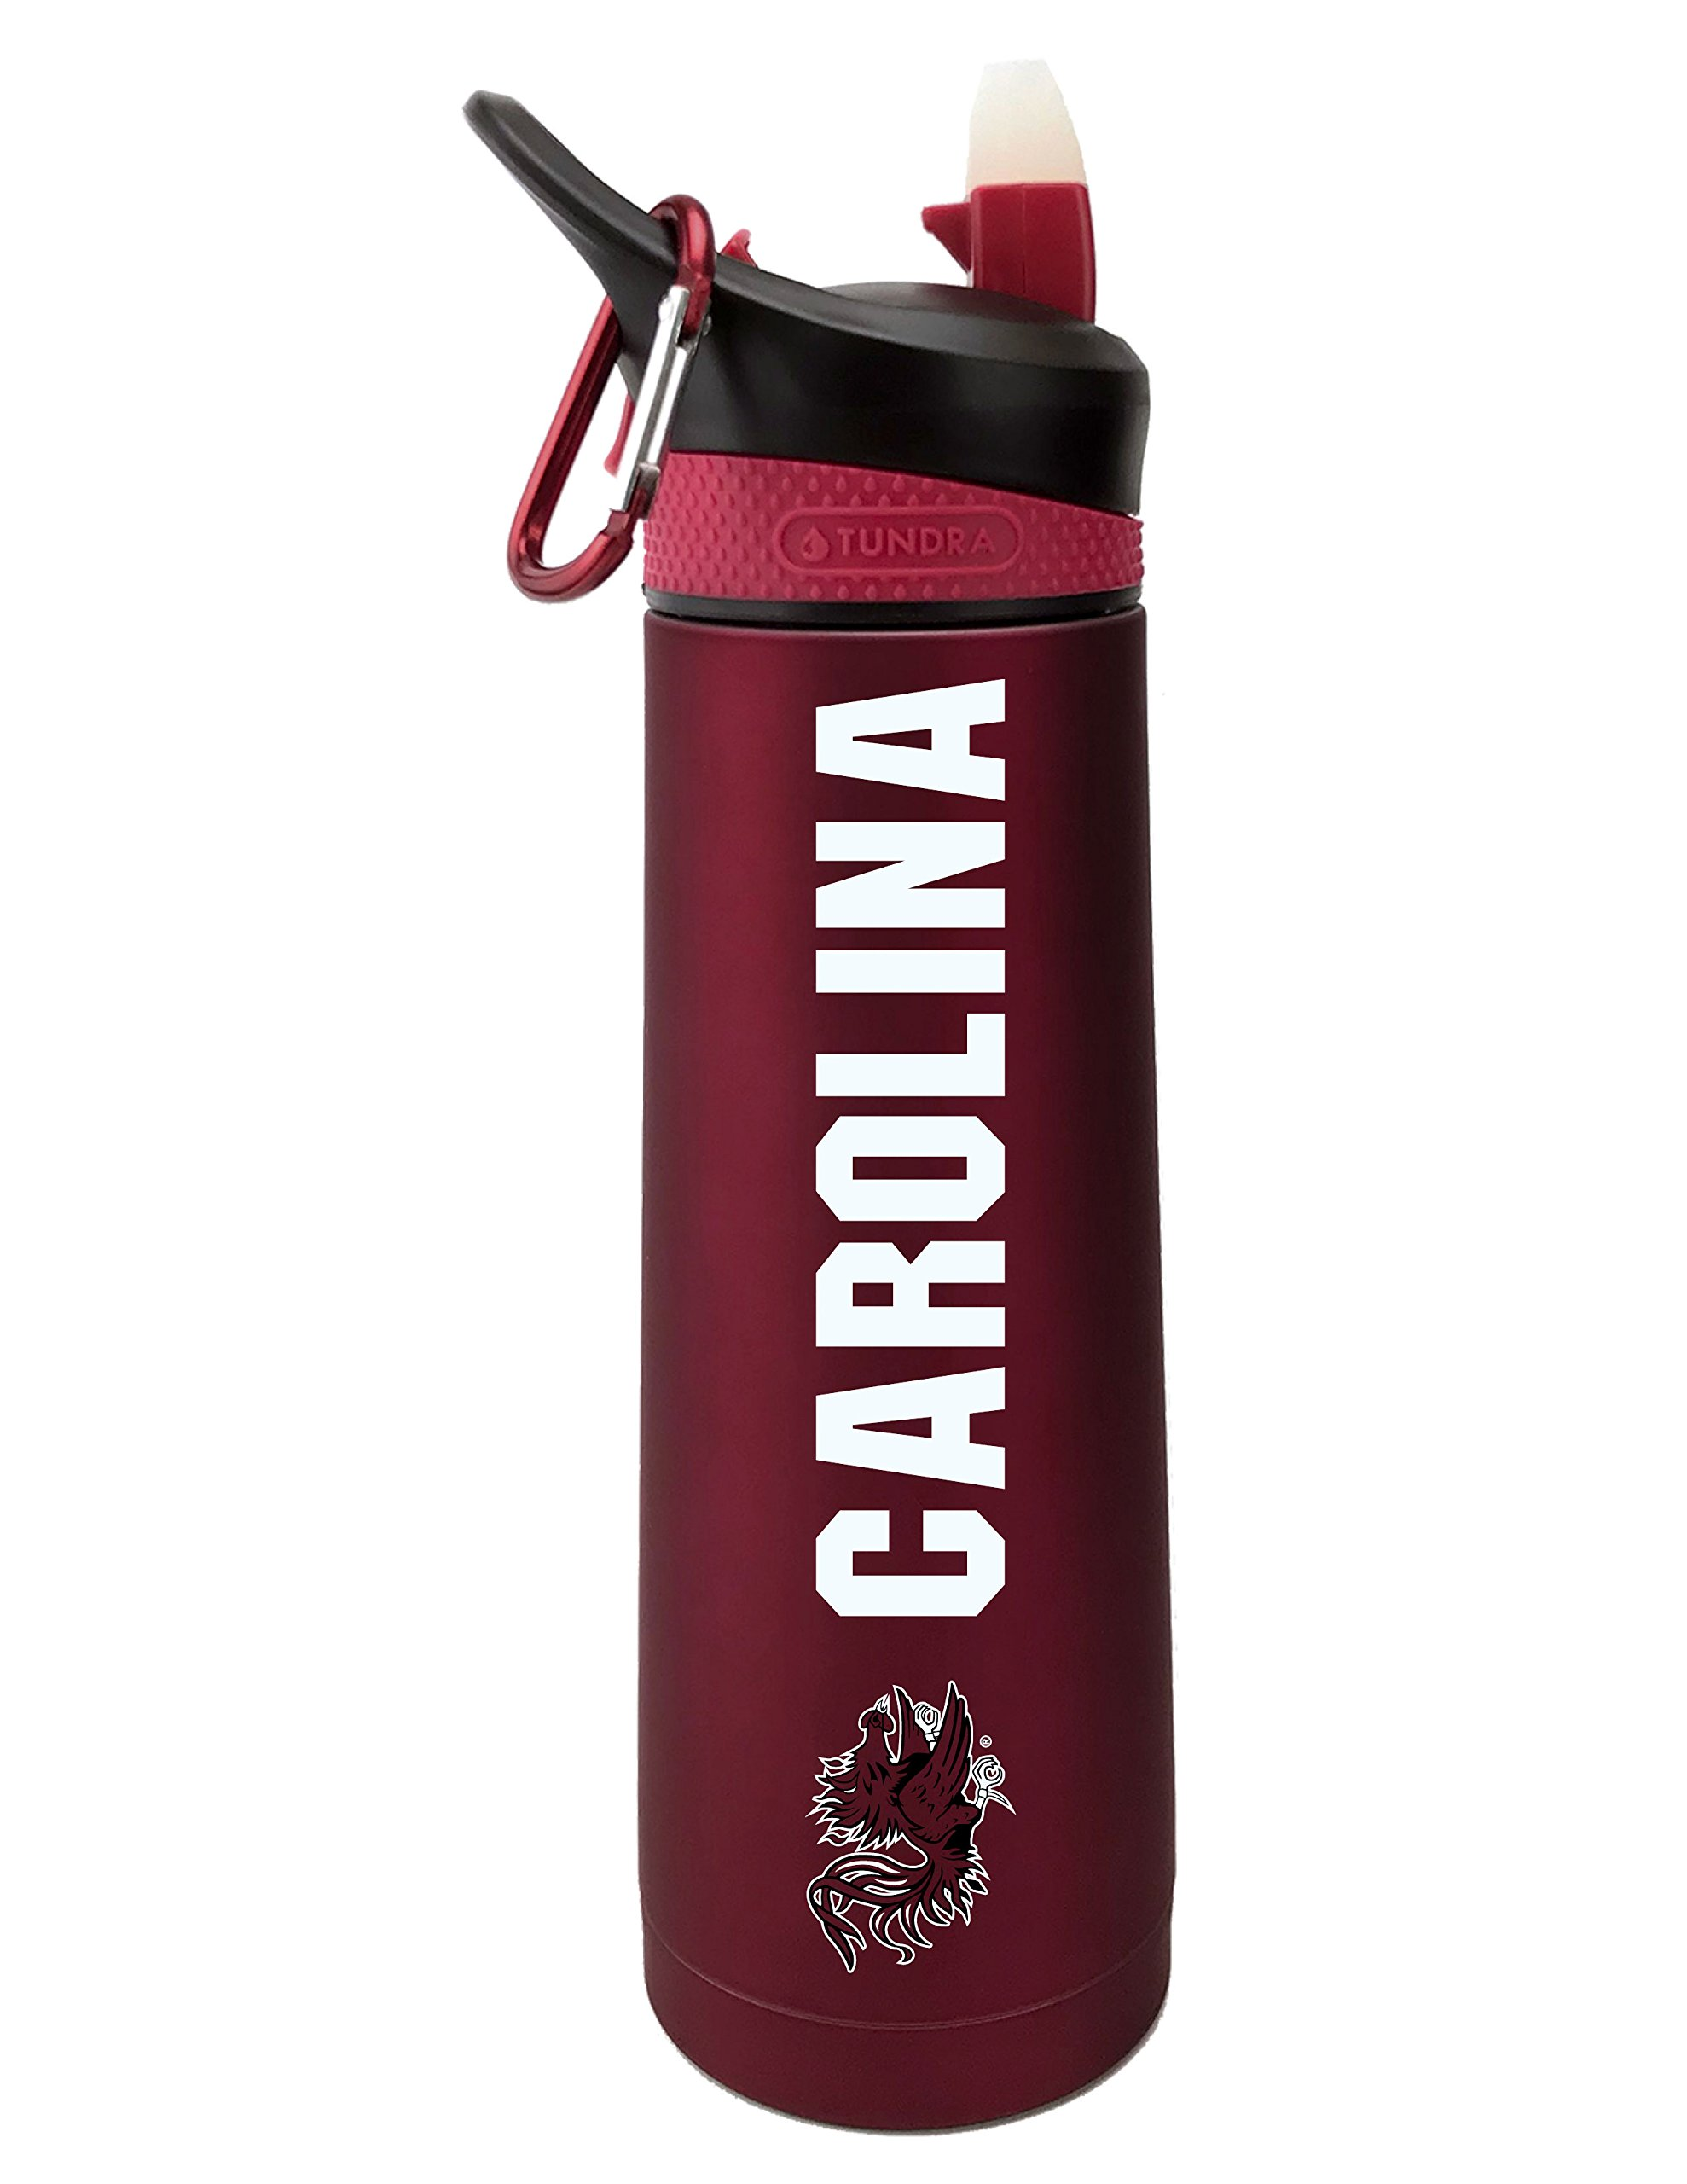 The Fanatic Group South Carolina University Dual Walled Stainless Steel Sports Bottle, Design 1 - Burgundy